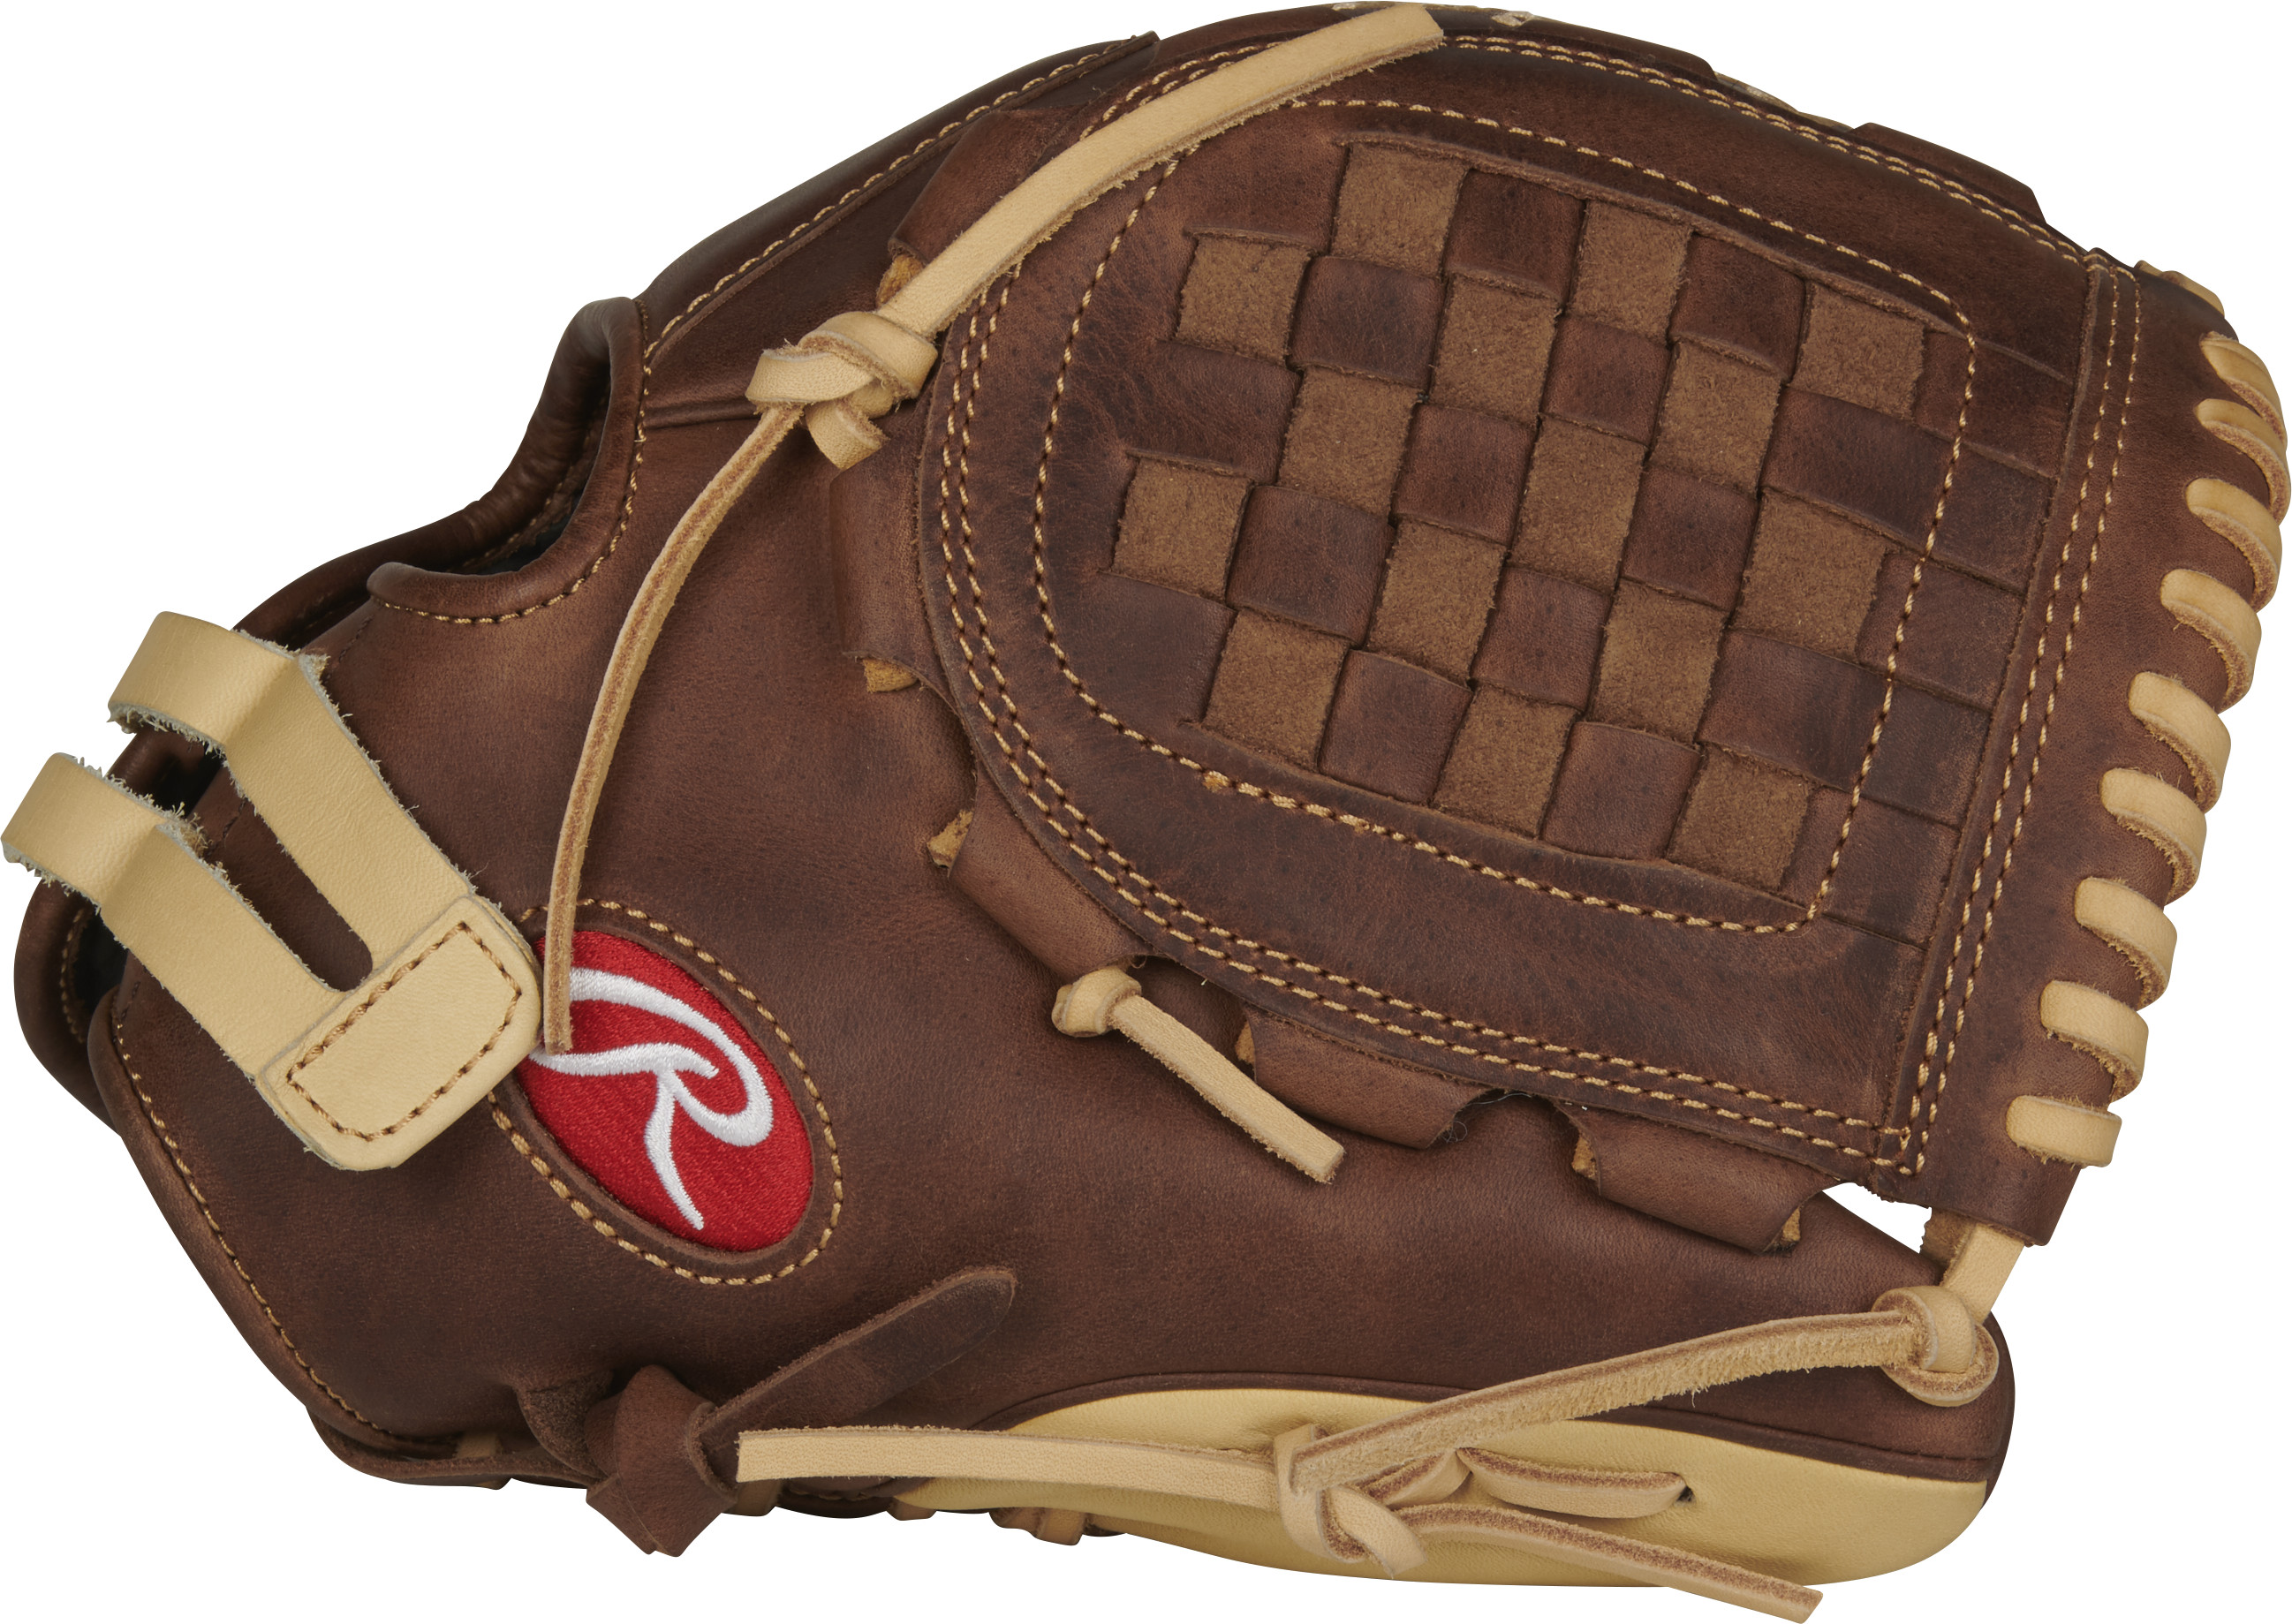 http://www.bestbatdeals.com/images/gloves/rawlings/PRO120SB-3SL-3.jpg